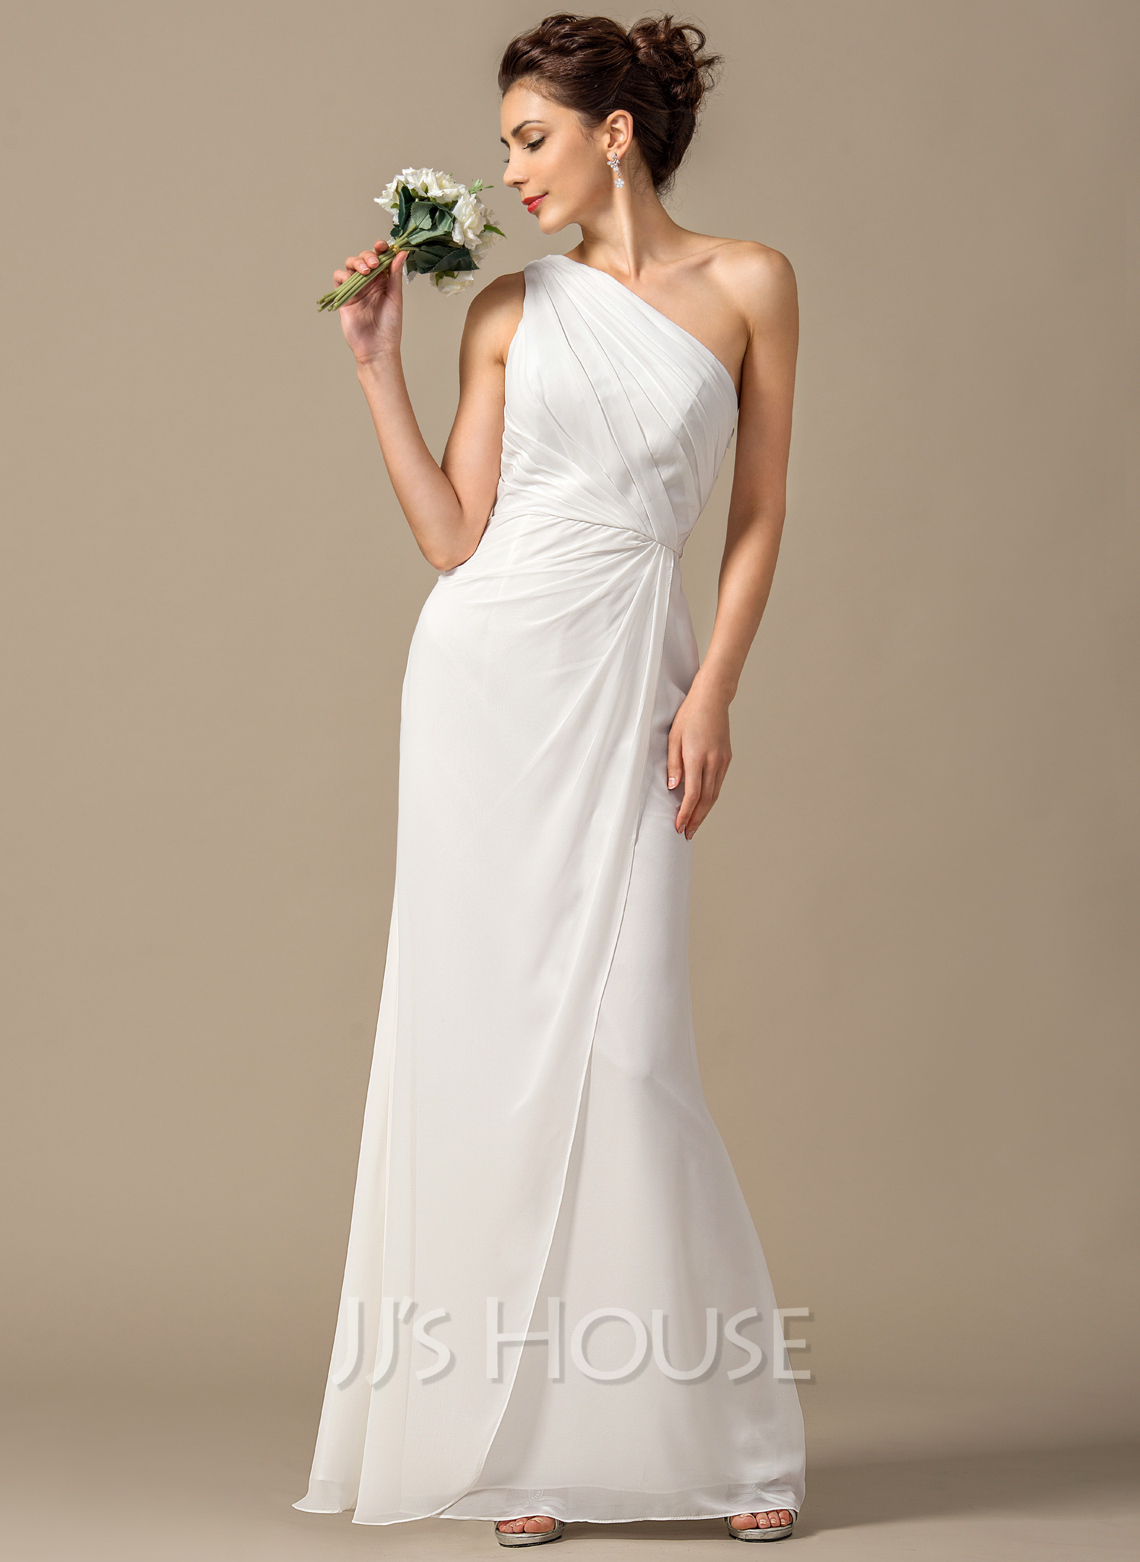 Sheath Column One-Shoulder Floor-Length Chiffon Bridesmaid Dress With  Ruffle. Loading zoom e17f71c3449d